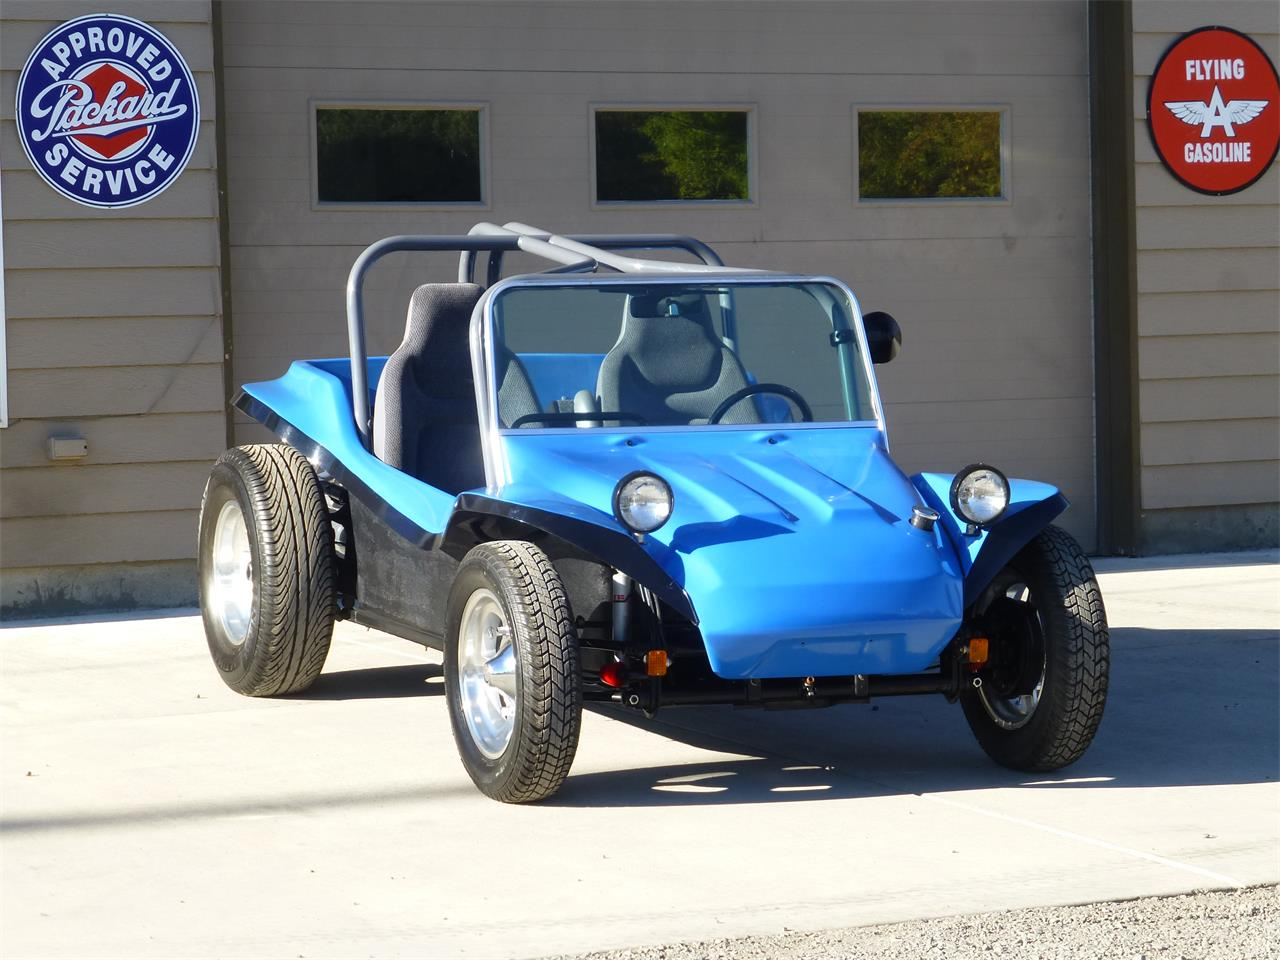 For Sale: 1965 Meyers Manx (Dune Buggy) in Bend, Oregon on suspension harness, battery harness, fall protection harness, oxygen sensor extension harness, maxi-seal harness, obd0 to obd1 conversion harness, radio harness, nakamichi harness, dog harness, pony harness, safety harness, pet harness, cable harness, engine harness, electrical harness, alpine stereo harness, amp bypass harness,